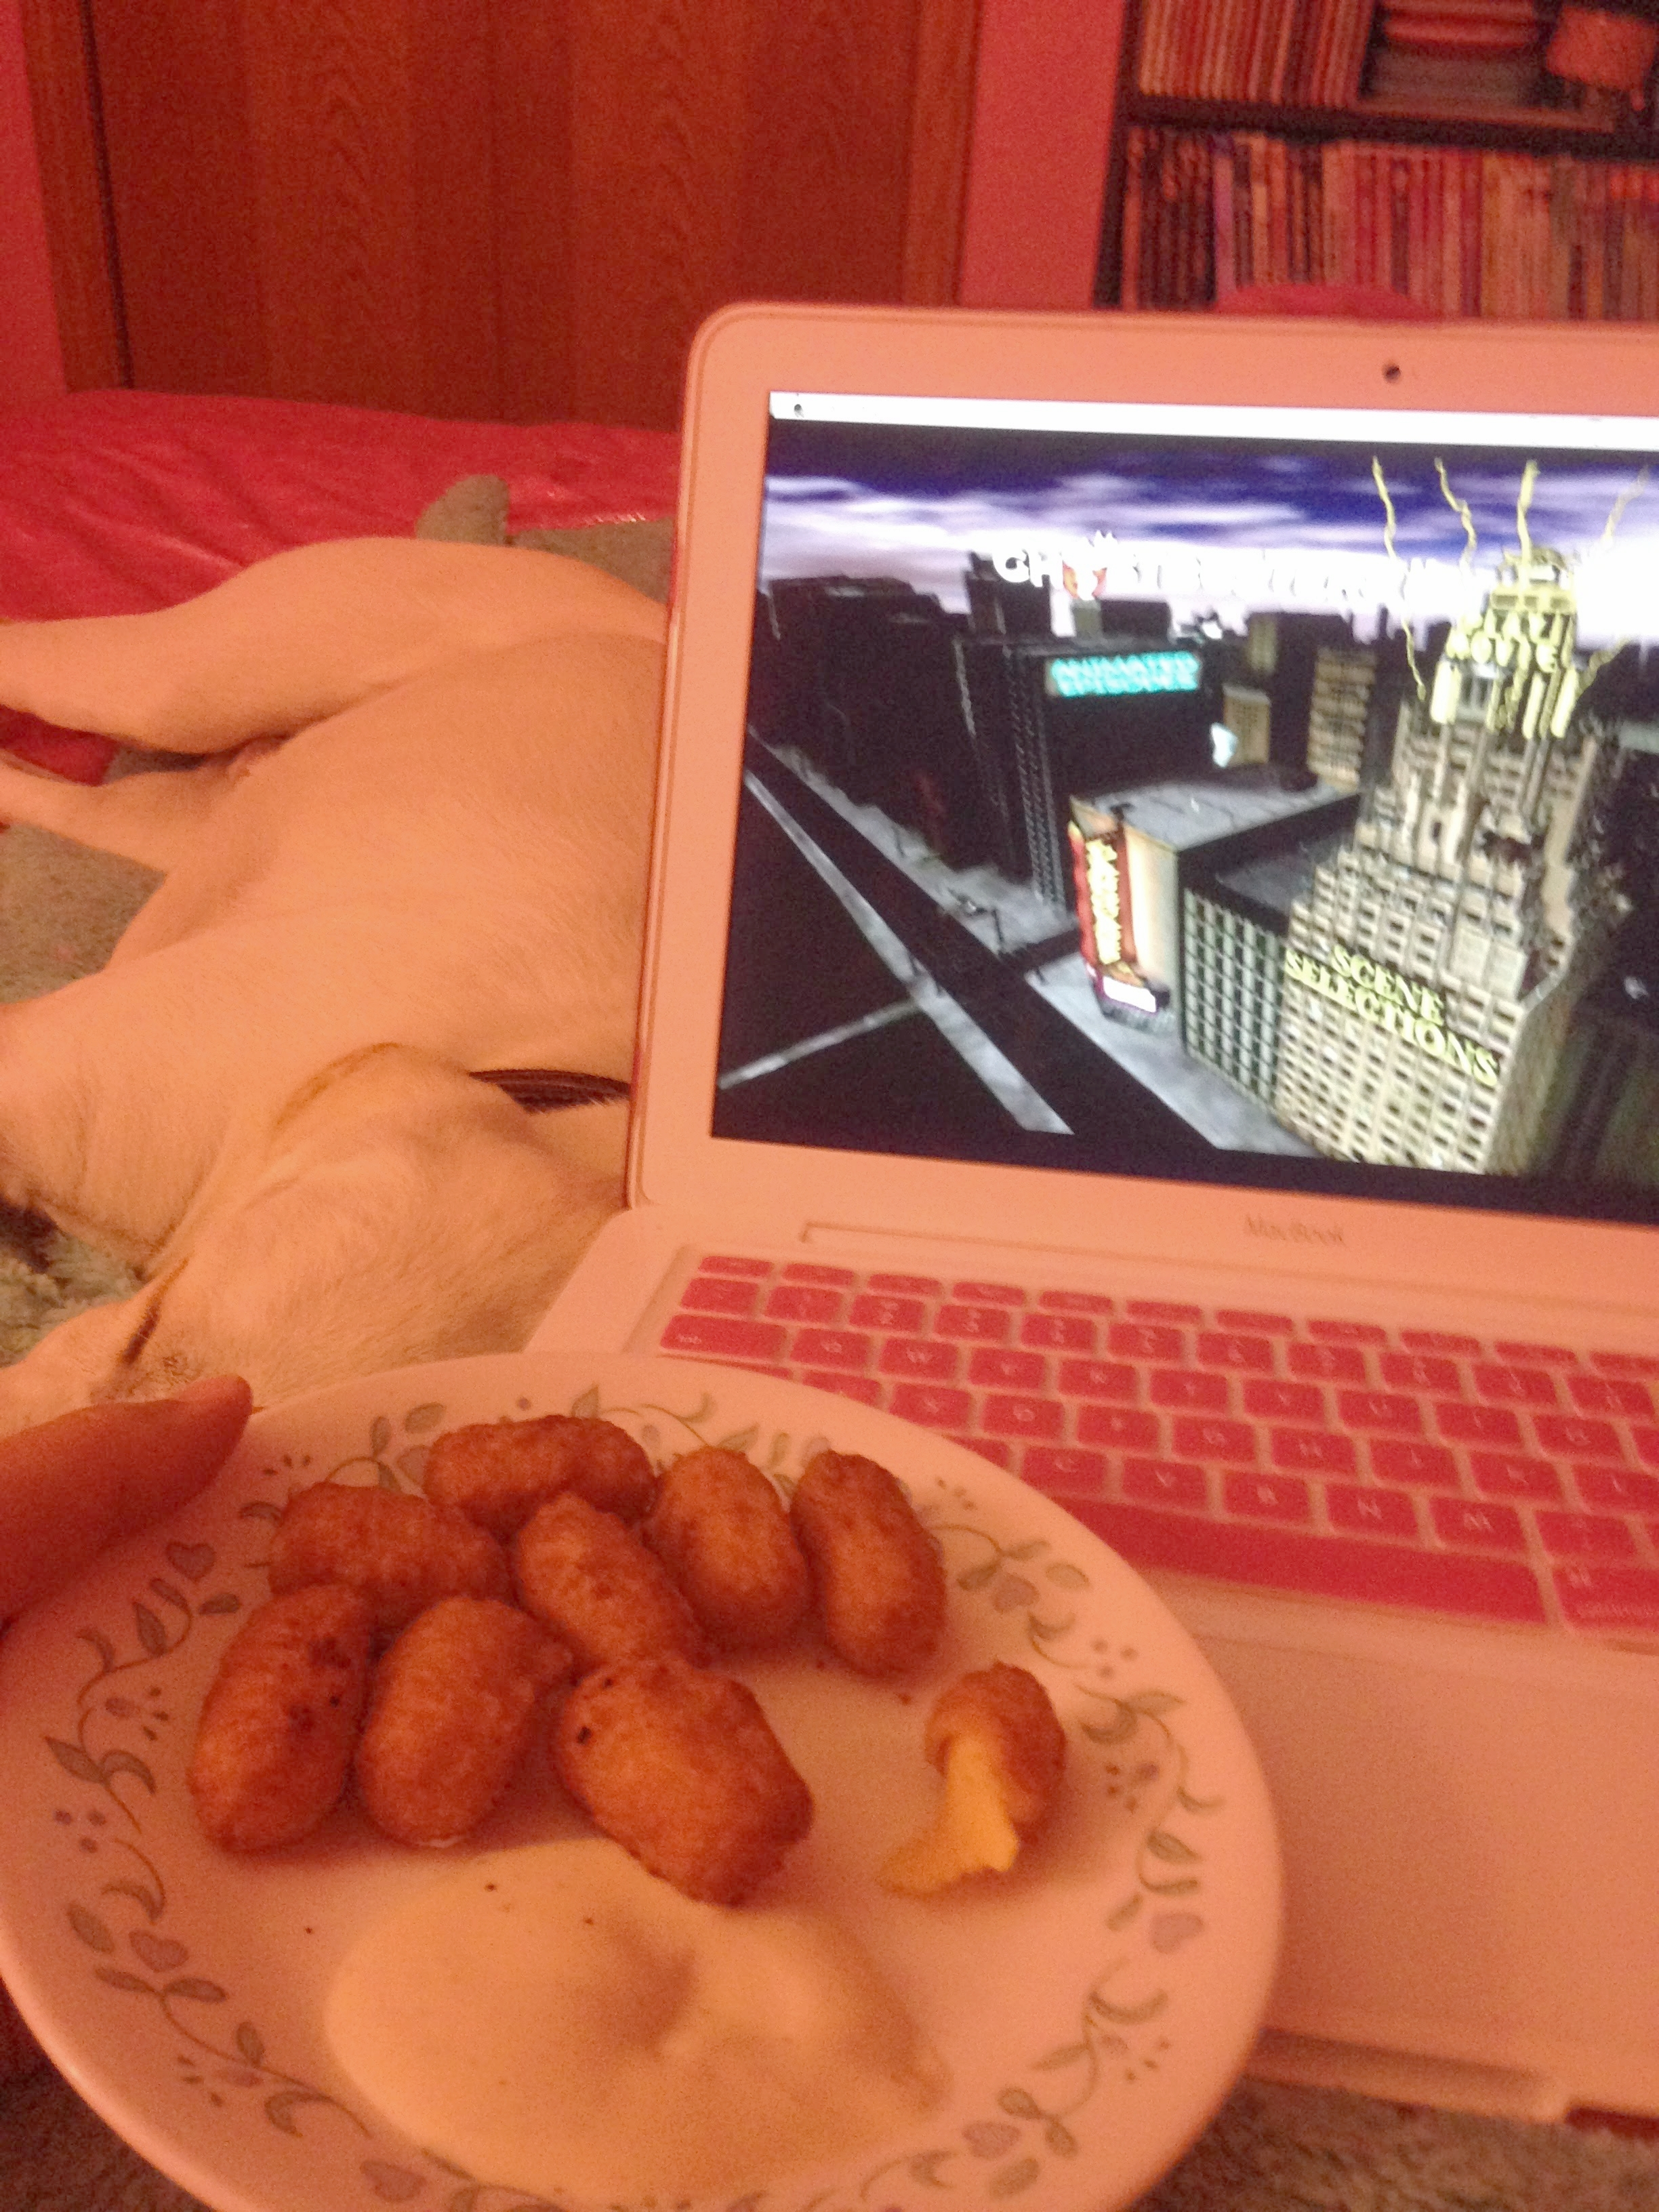 cheeseballs-laptop-movie-dog.jpg